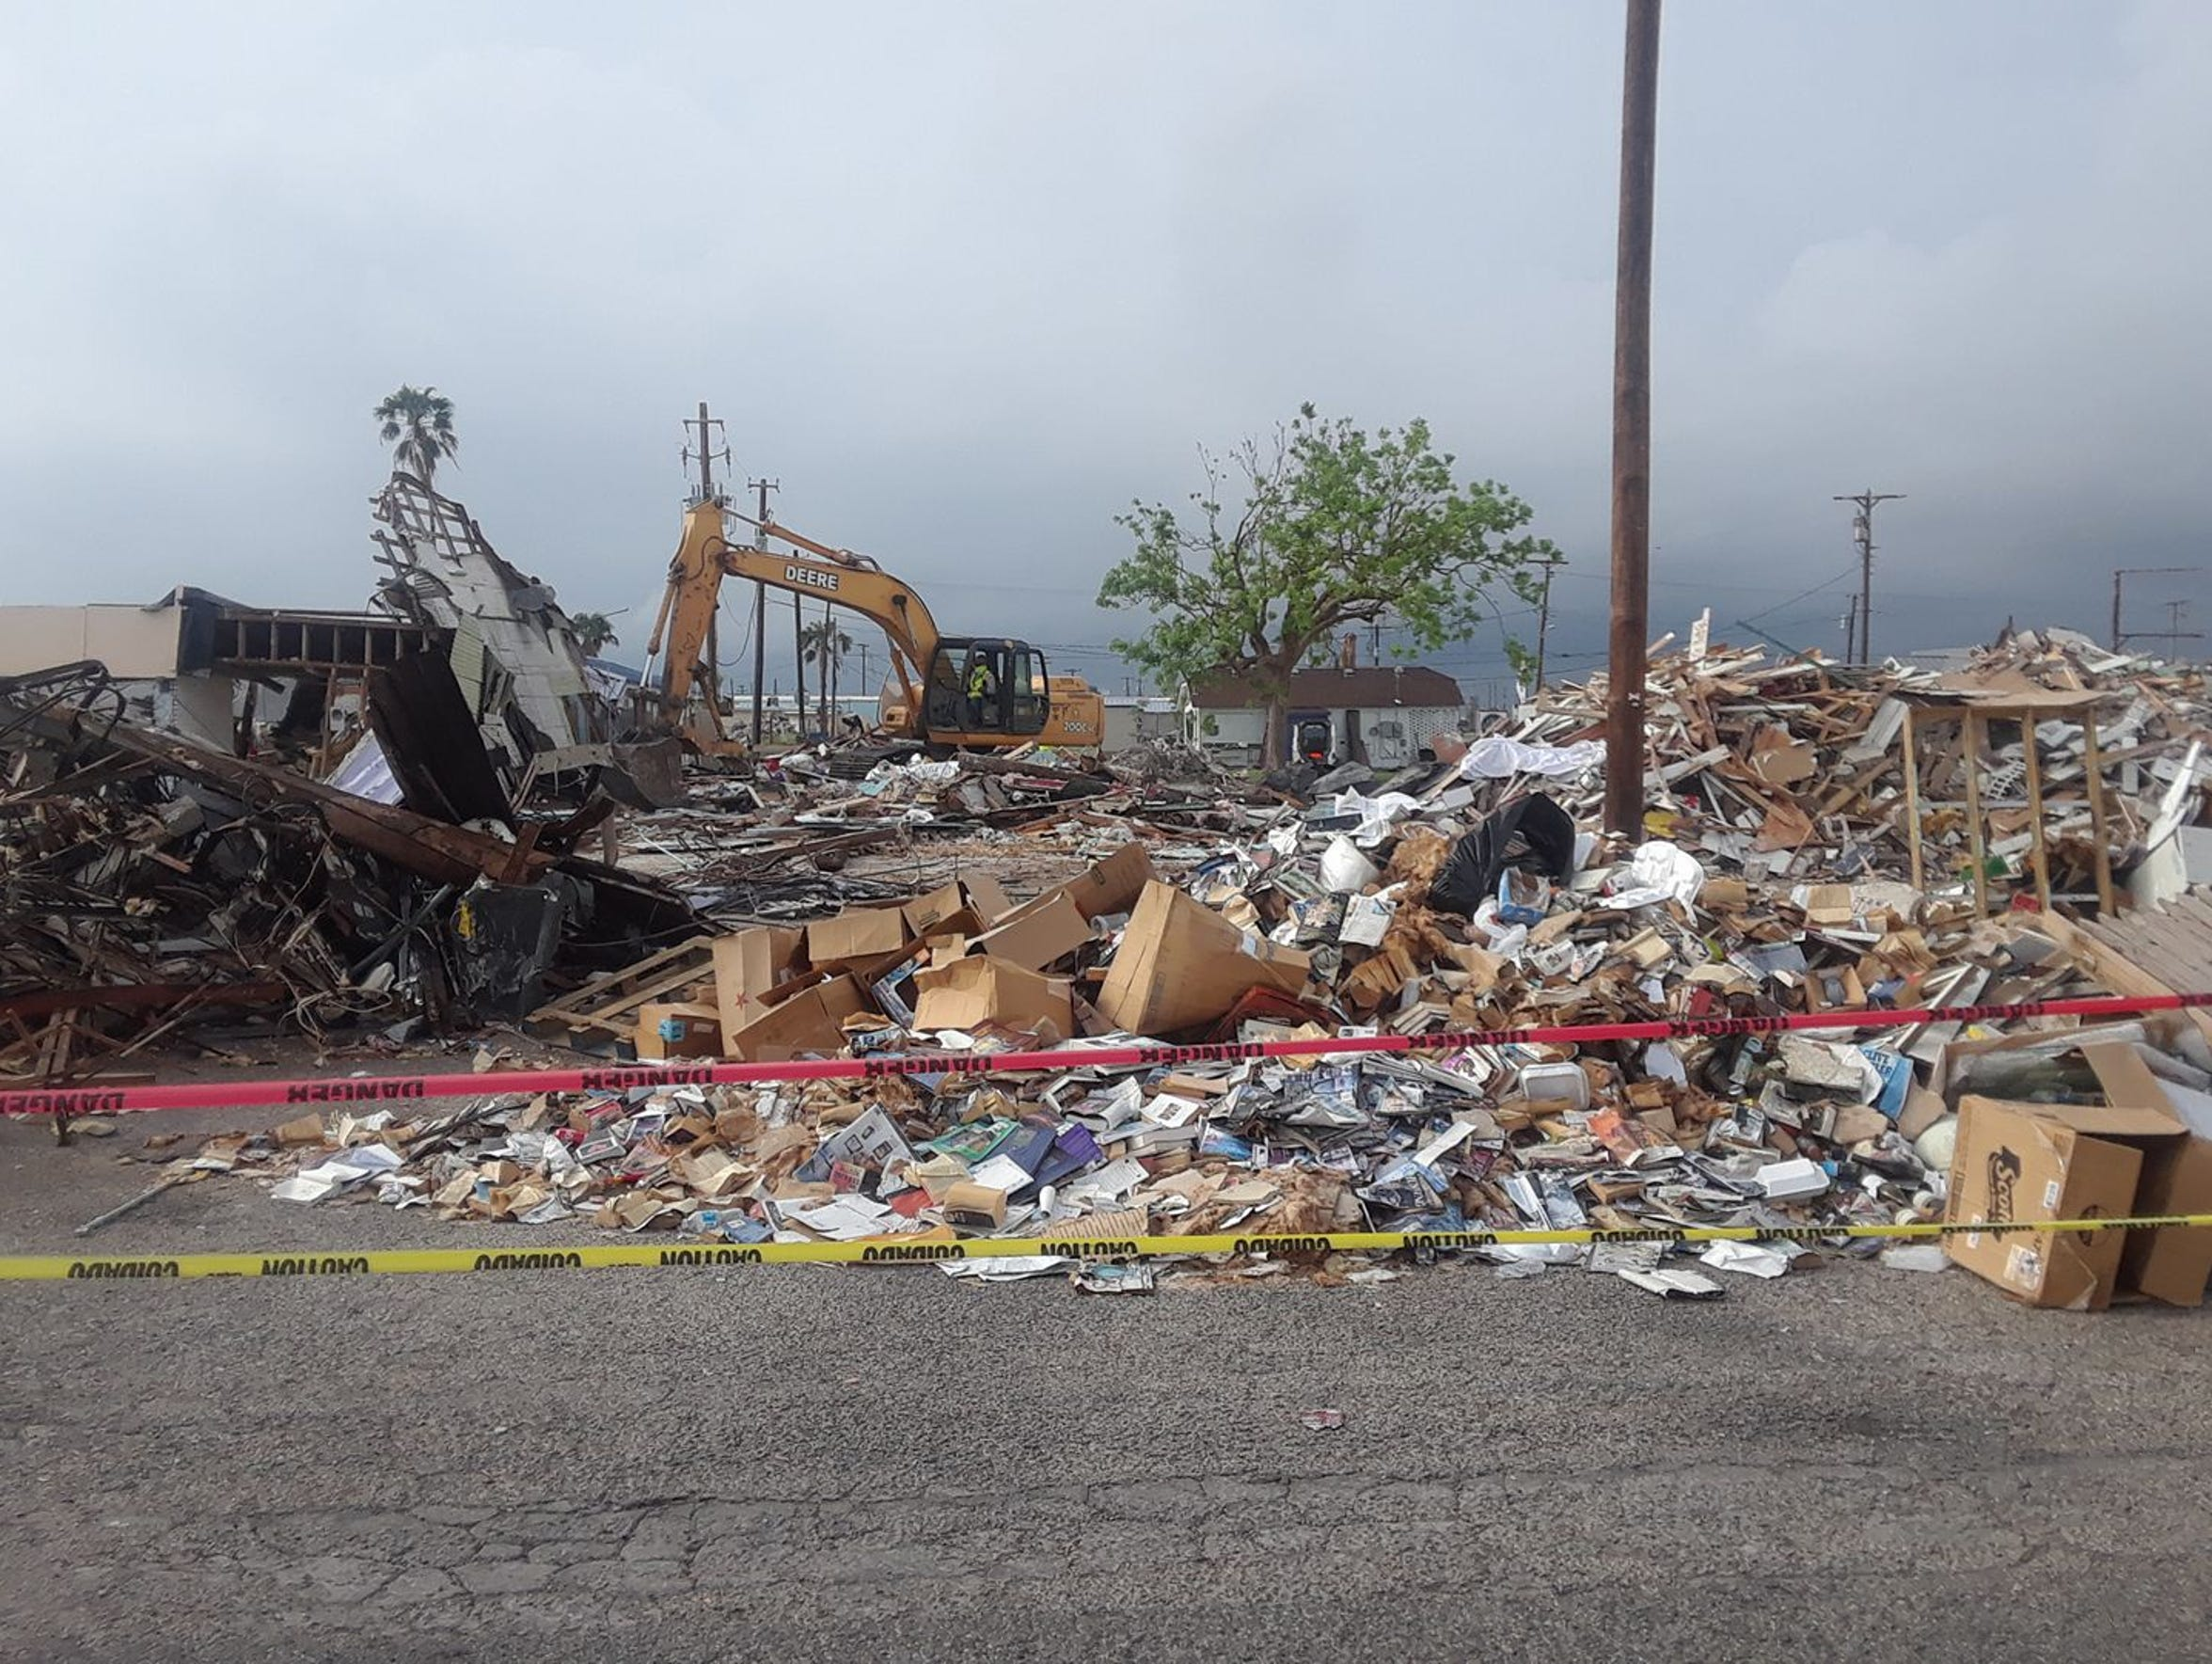 Sam McCrary's Mermaid's Kitchen was demolished after